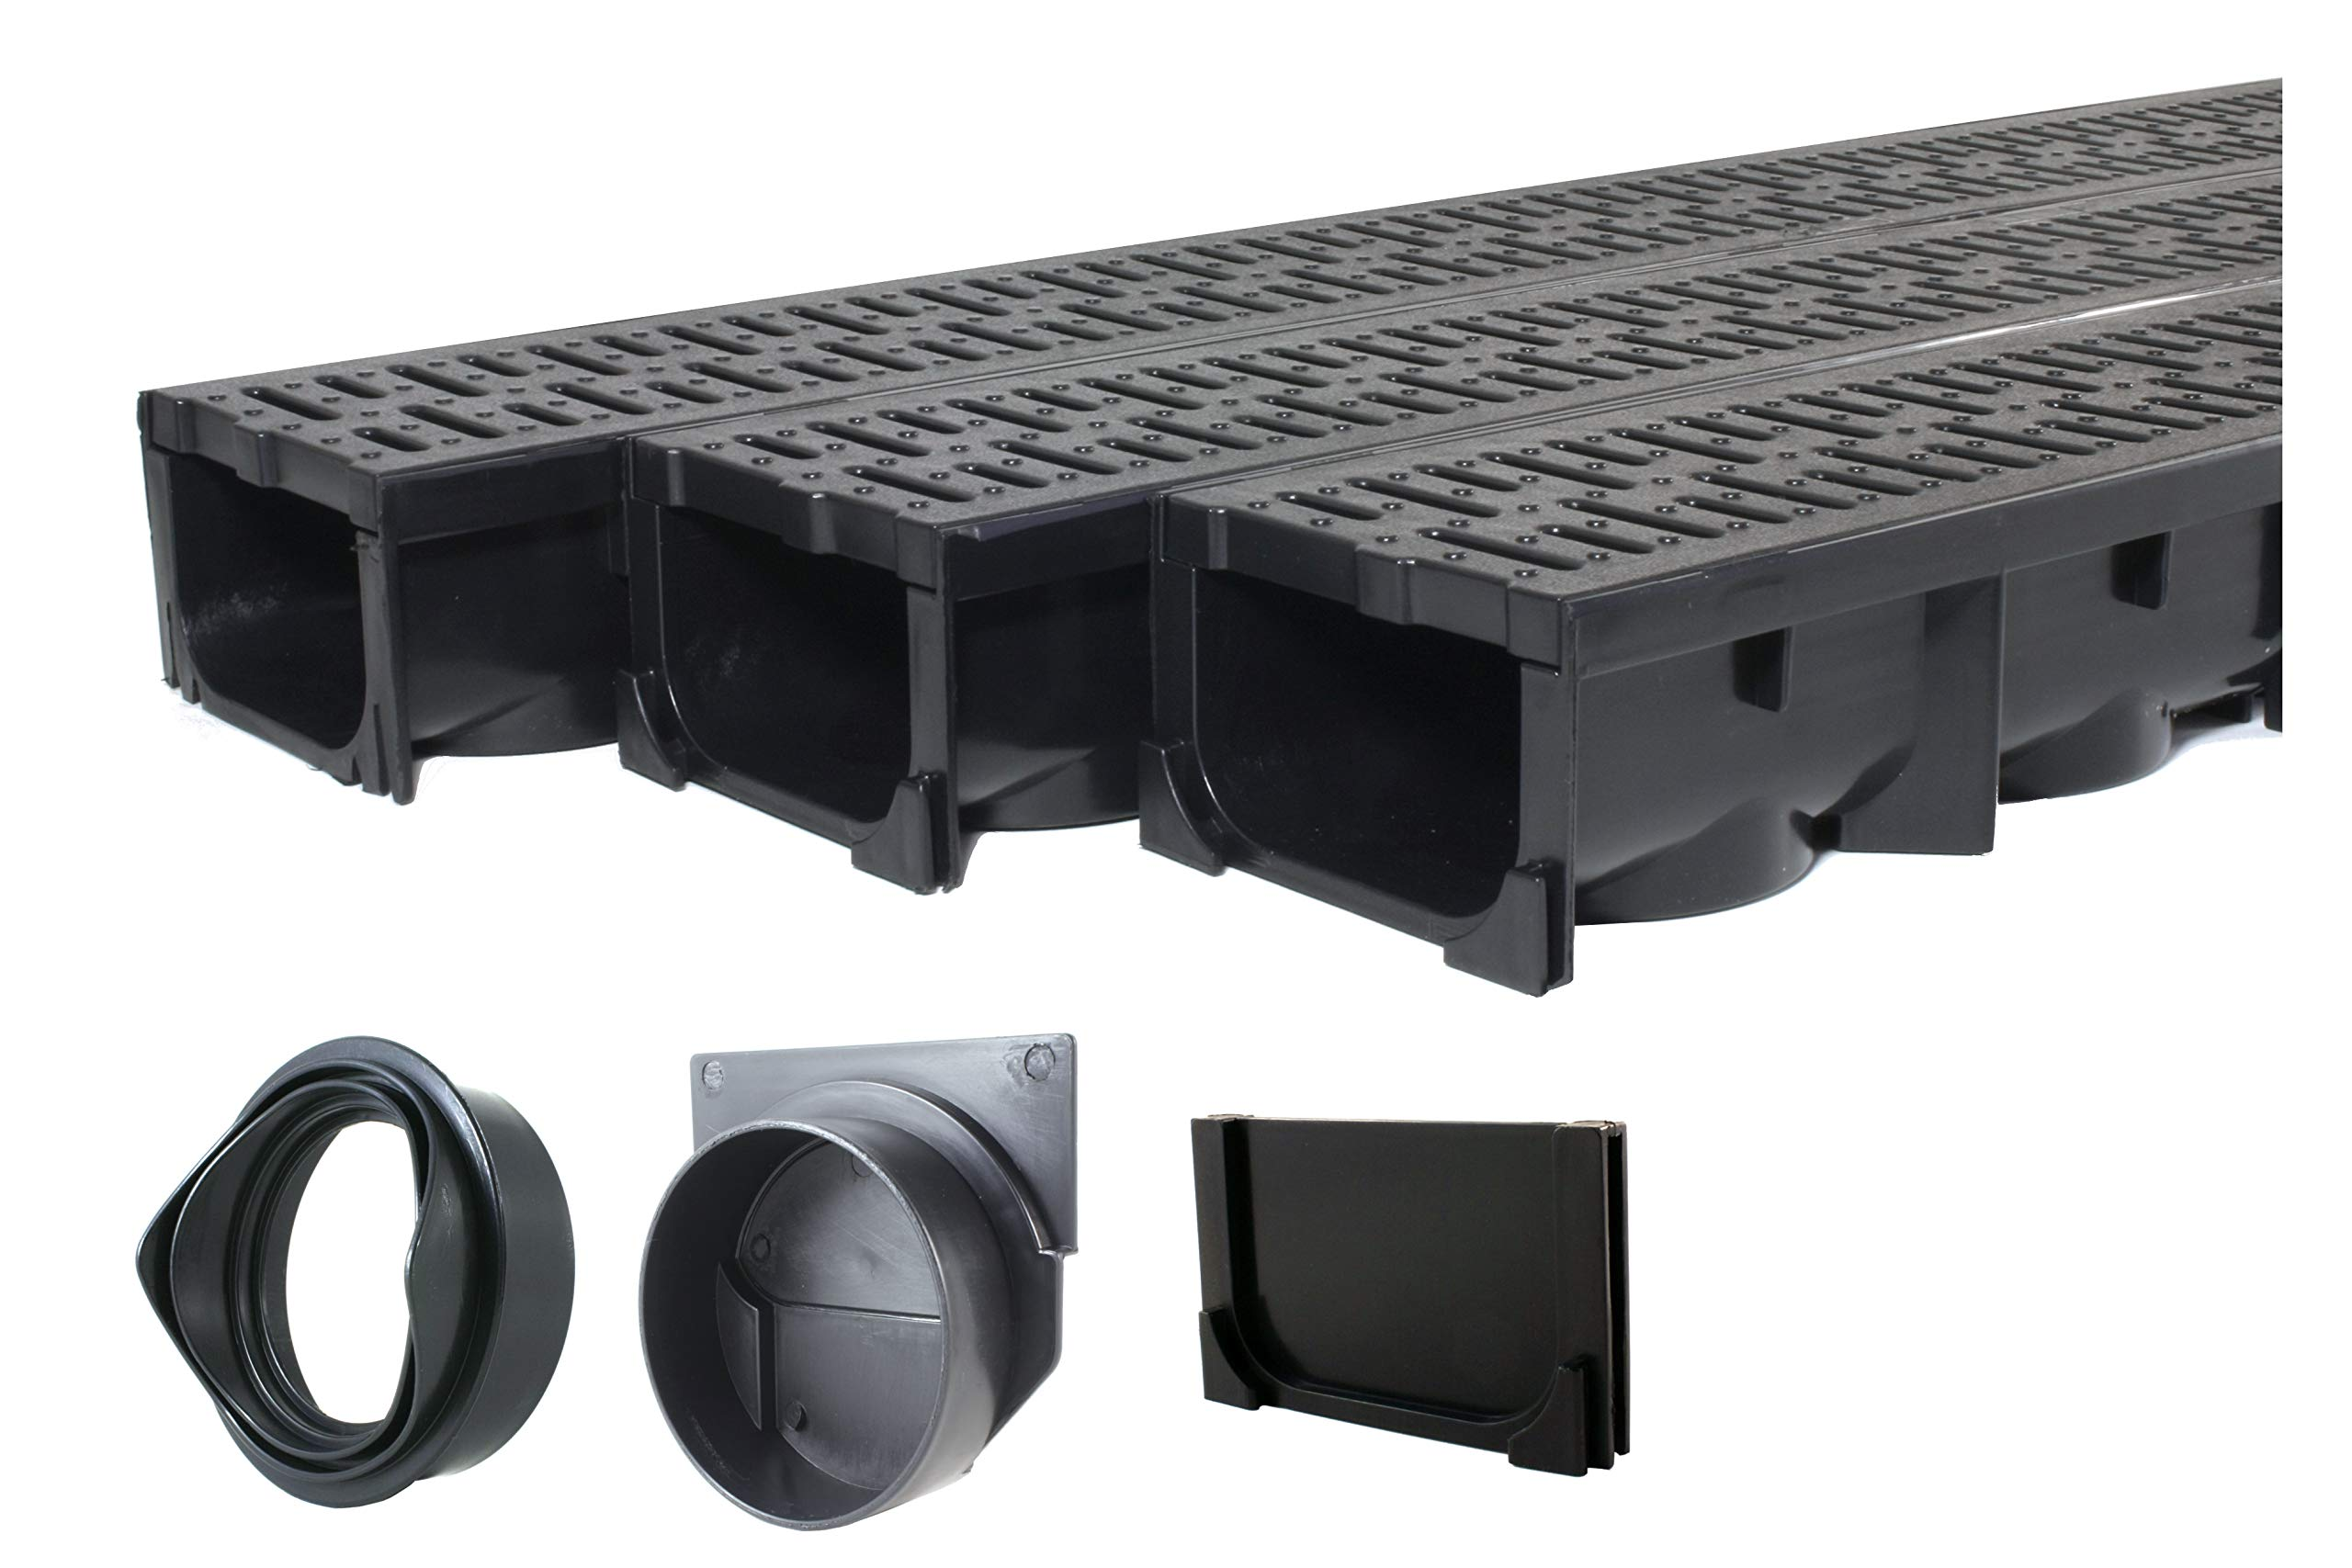 Drainage Trench - Channel Drain With Grate - Black Plastic - 3 x 39'' - (117'' Total Length)